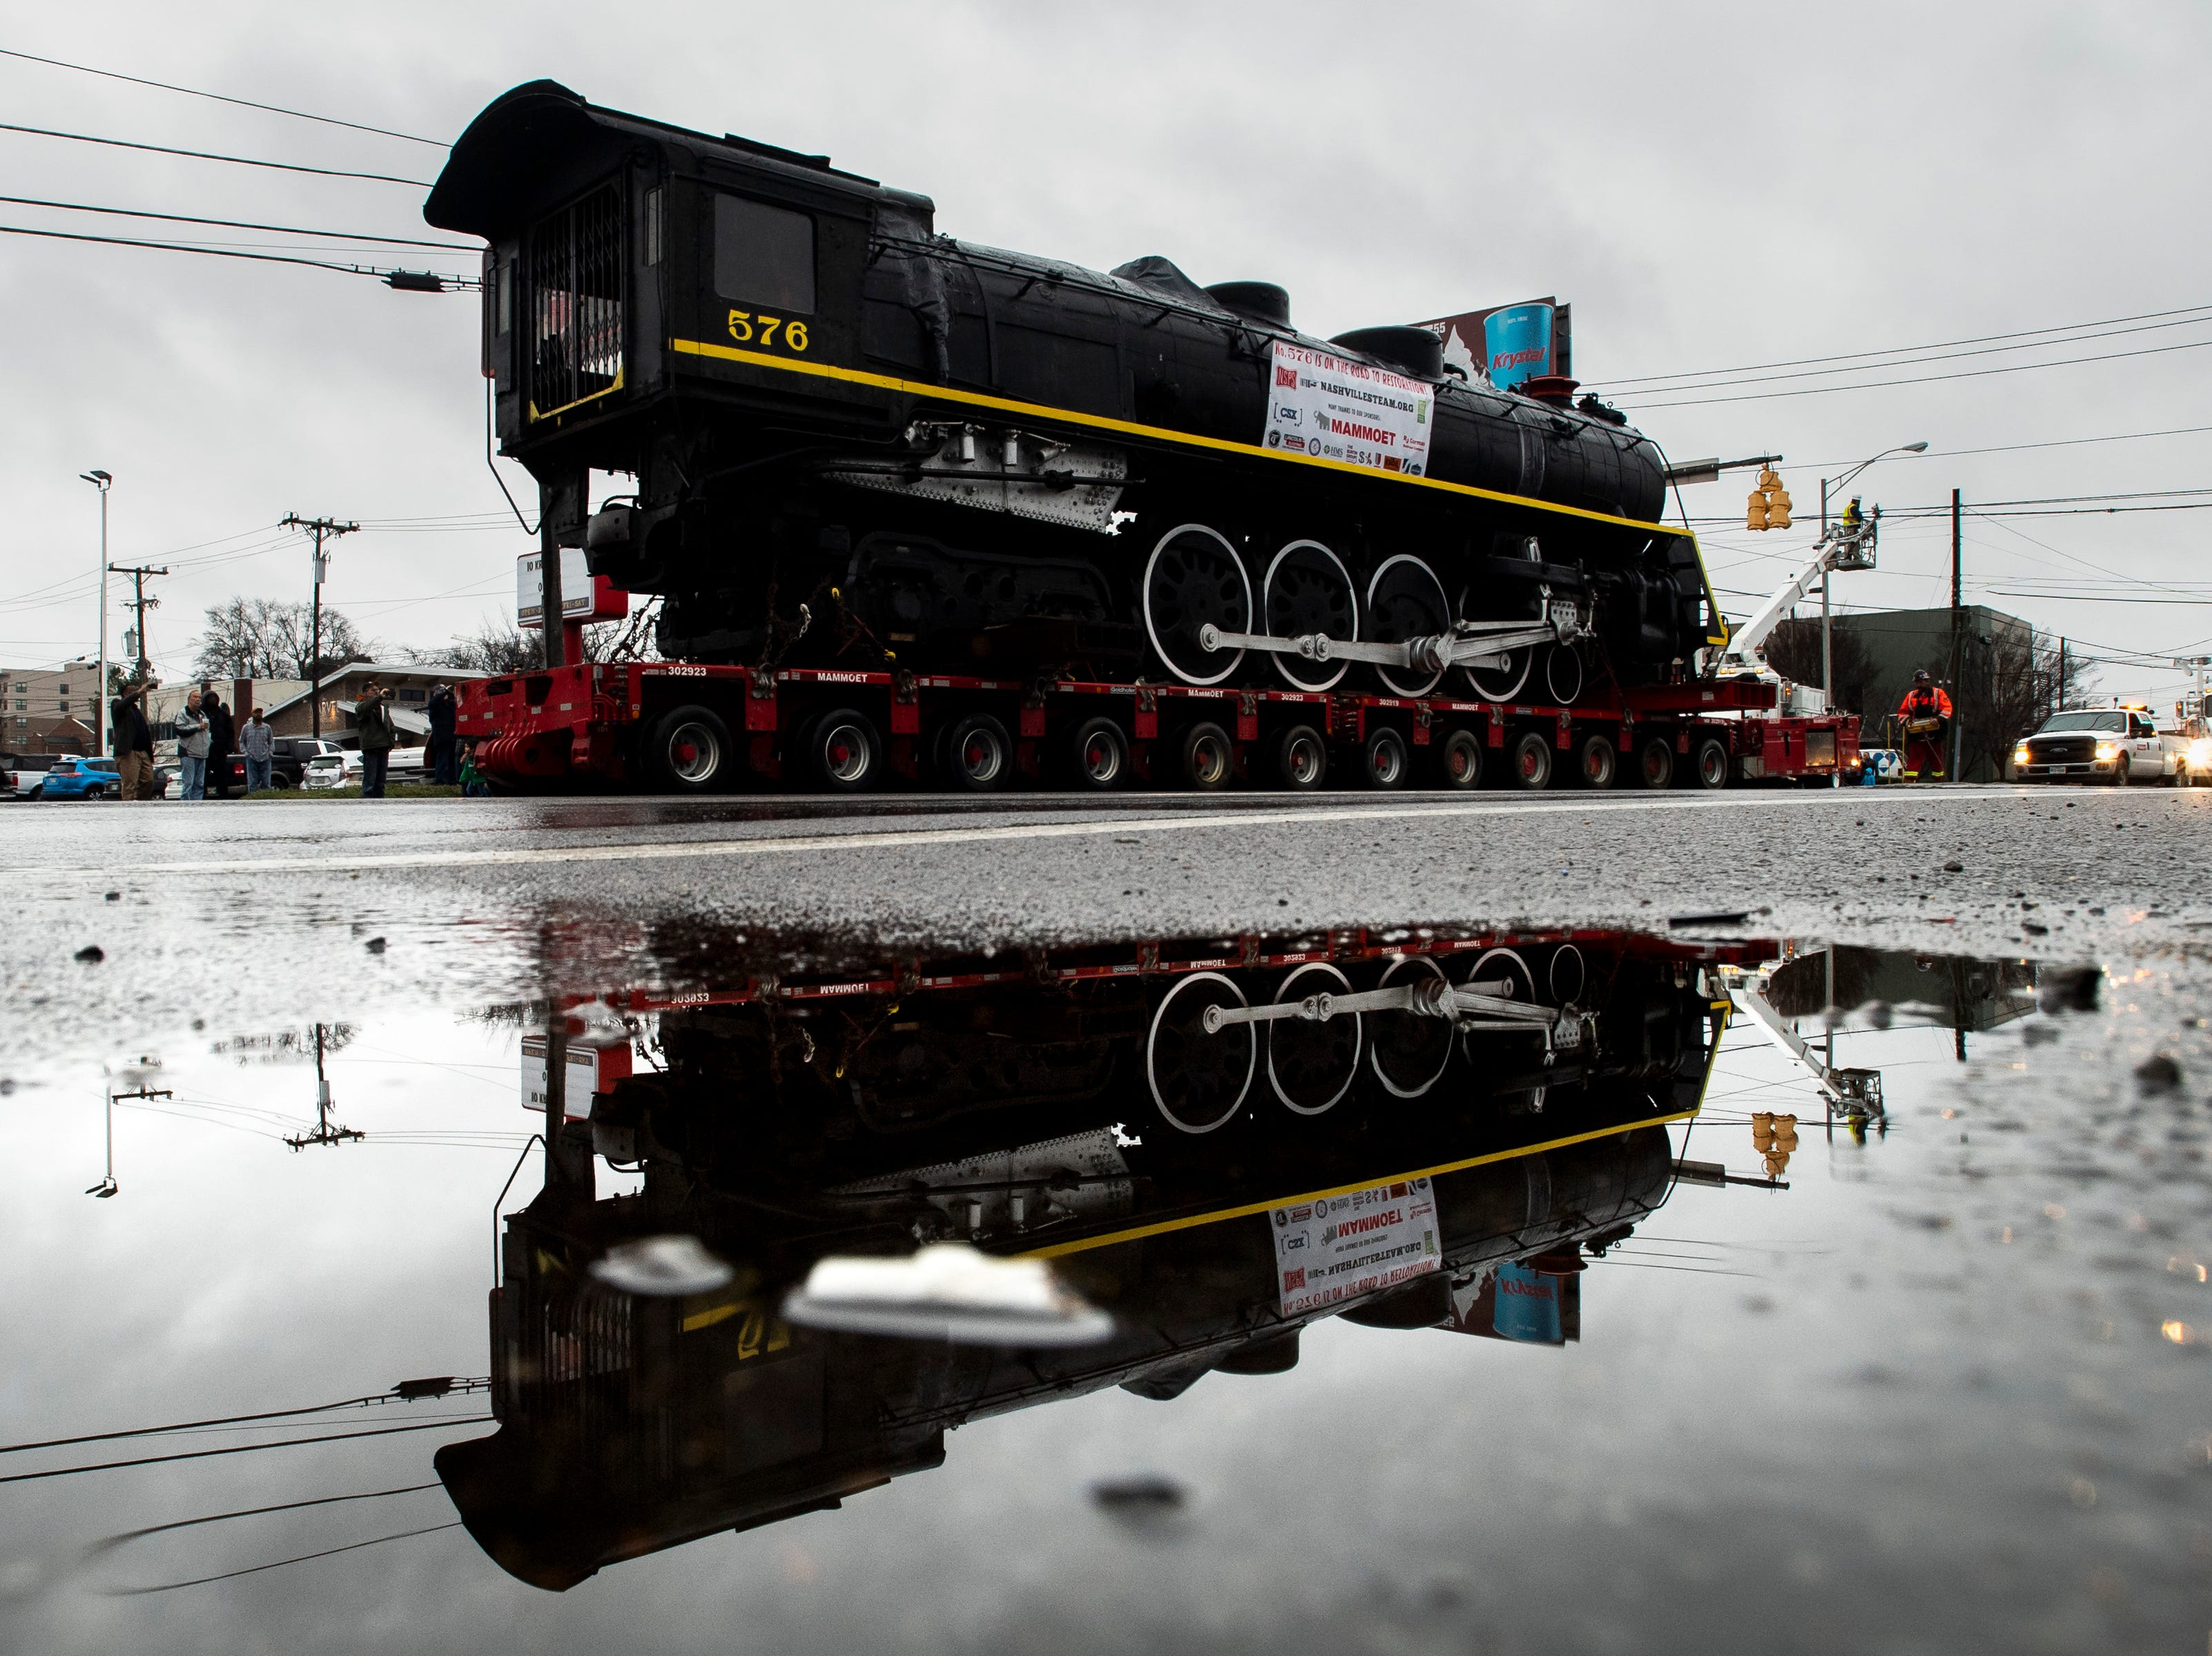 Former Nashville, Chattanooga & St. Louis Railway steam locomotive No. 576 is moved down Charlotte Ave. in Nashville, Tenn., Sunday, Jan. 13, 2019. The train, which will be restored to working condition over approximately four years, has been on display in Centennial Park since 1953.